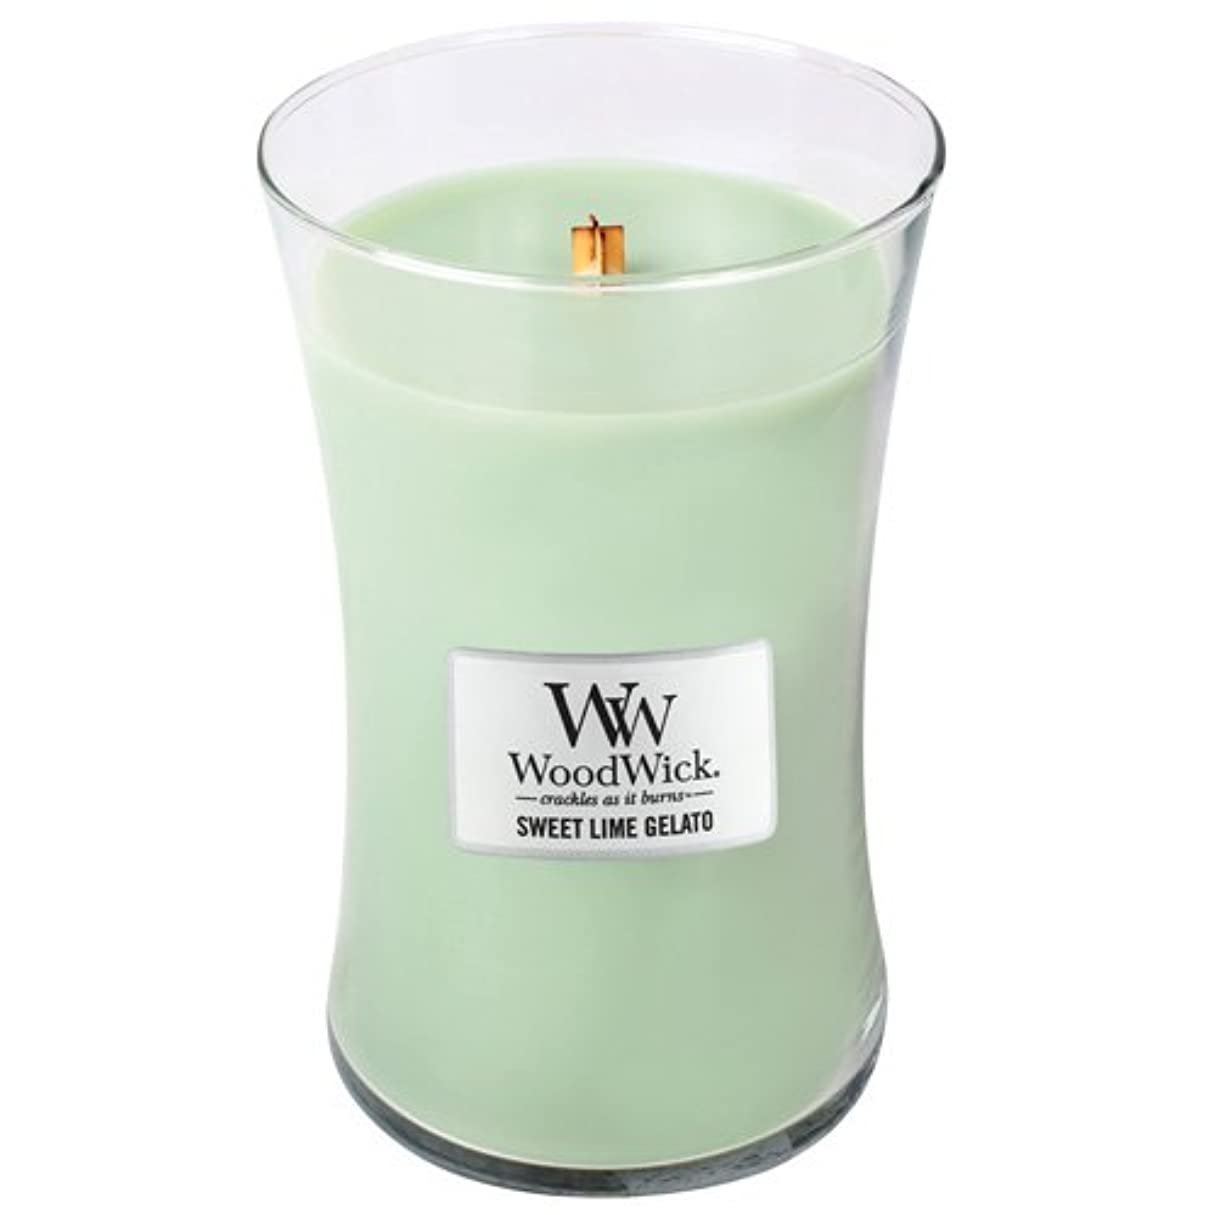 干ばつレモン抗議WoodWick Sweet Lime Gelato Large Jar Scented Candle